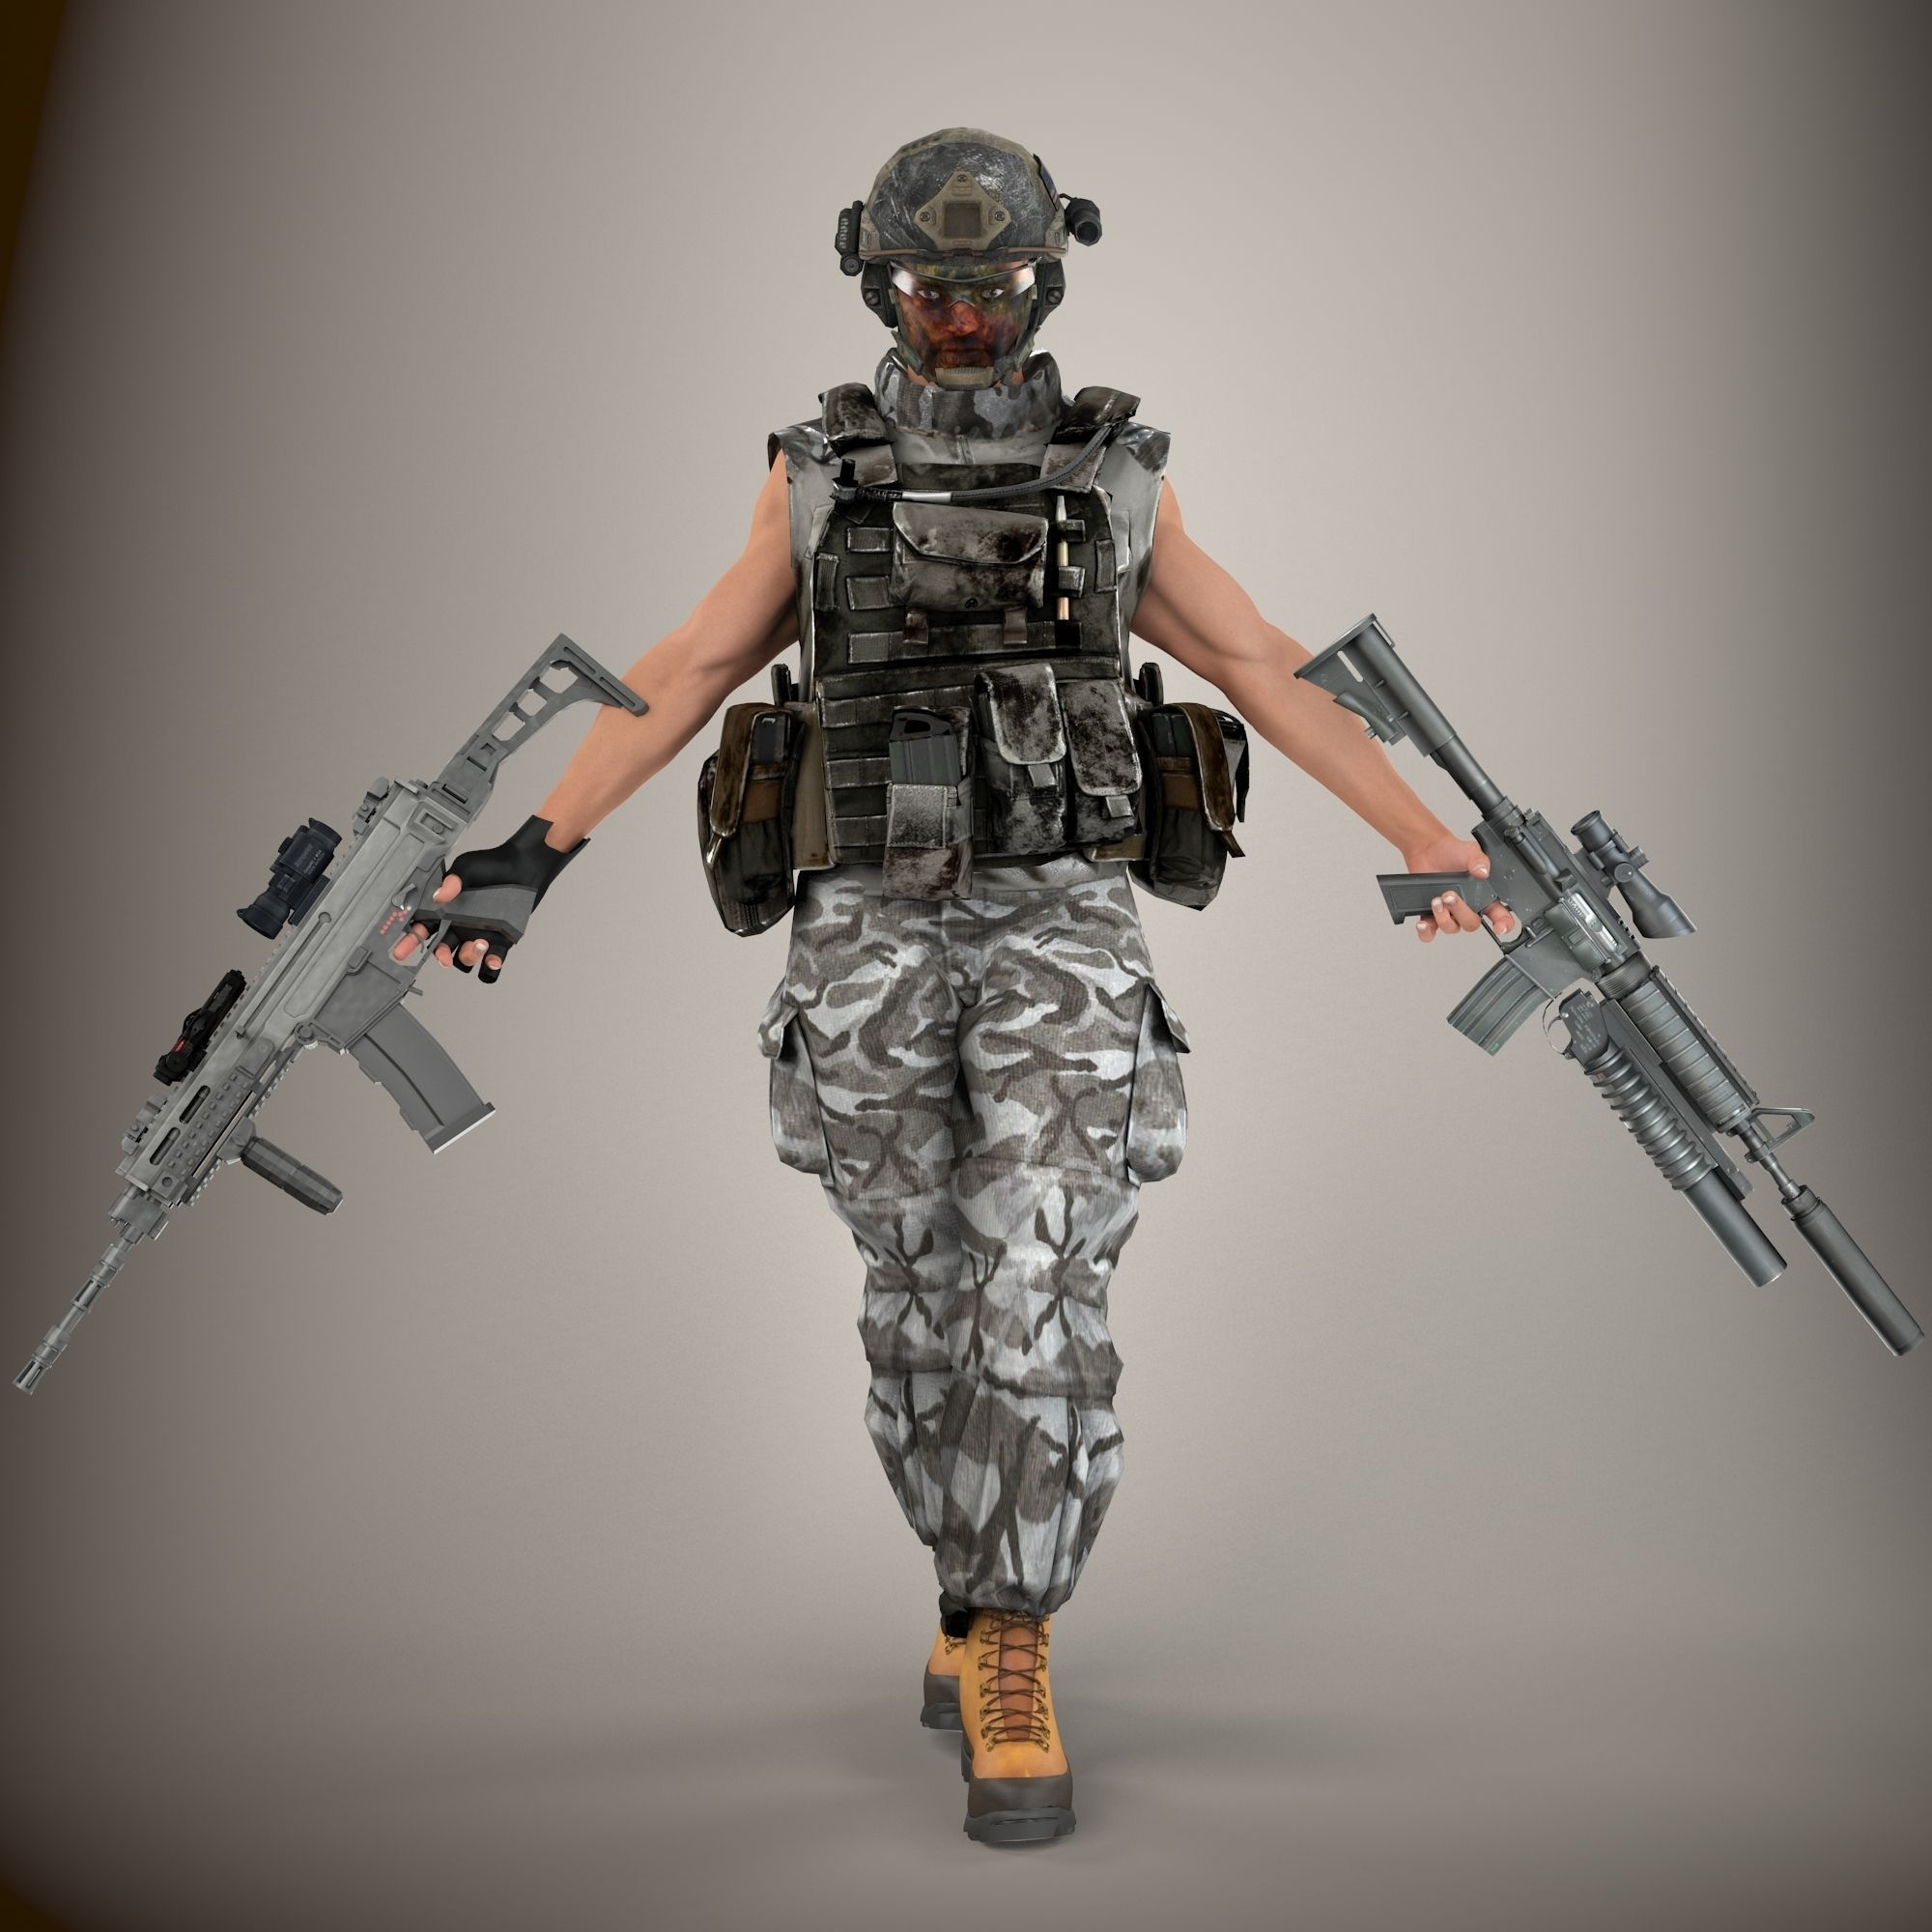 Ultimate Rigged Soldier 3D Model rigged MAX FBX | CGTrader.com